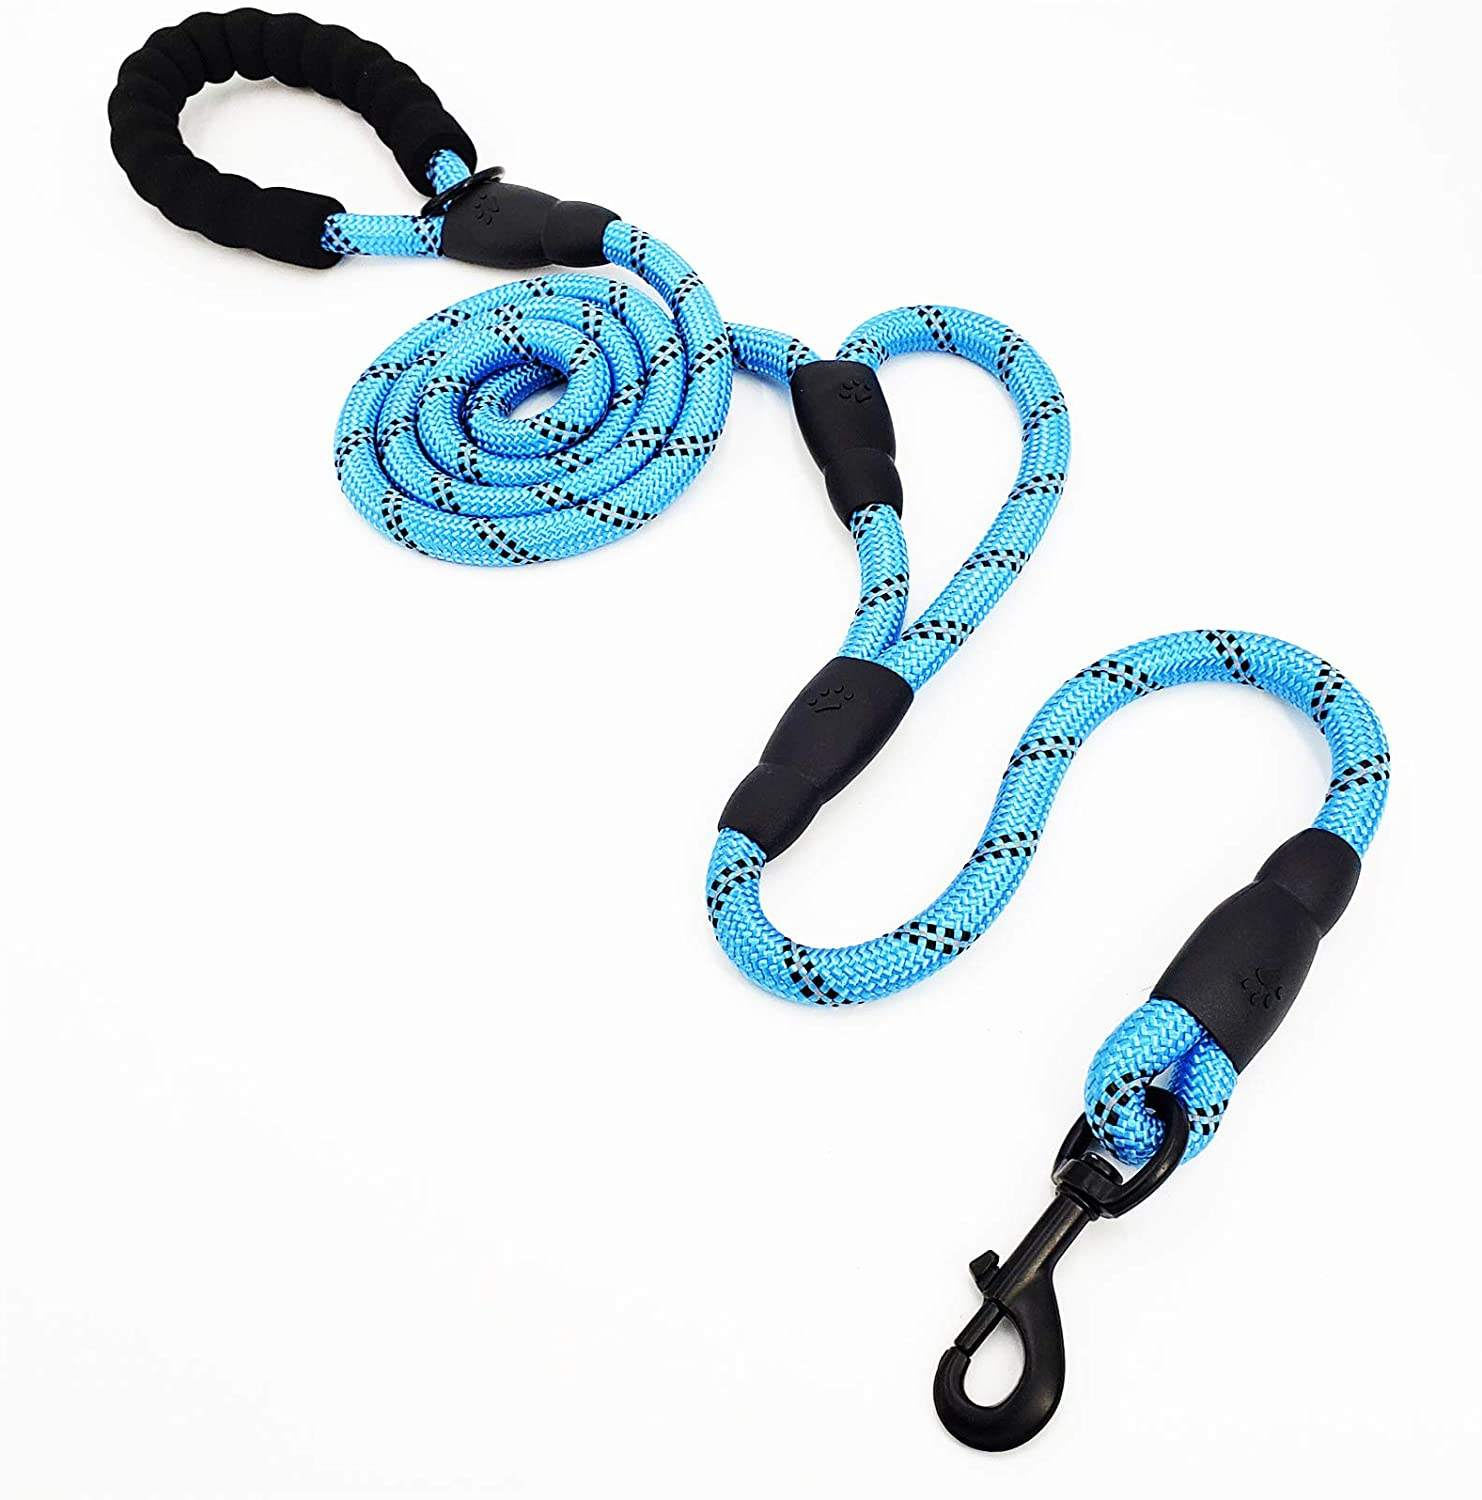 Padded Handles Reflective Stitching Long Heavy Duty Double 6FT Long Strong Dog Lead Leash for Medium Large Dogs